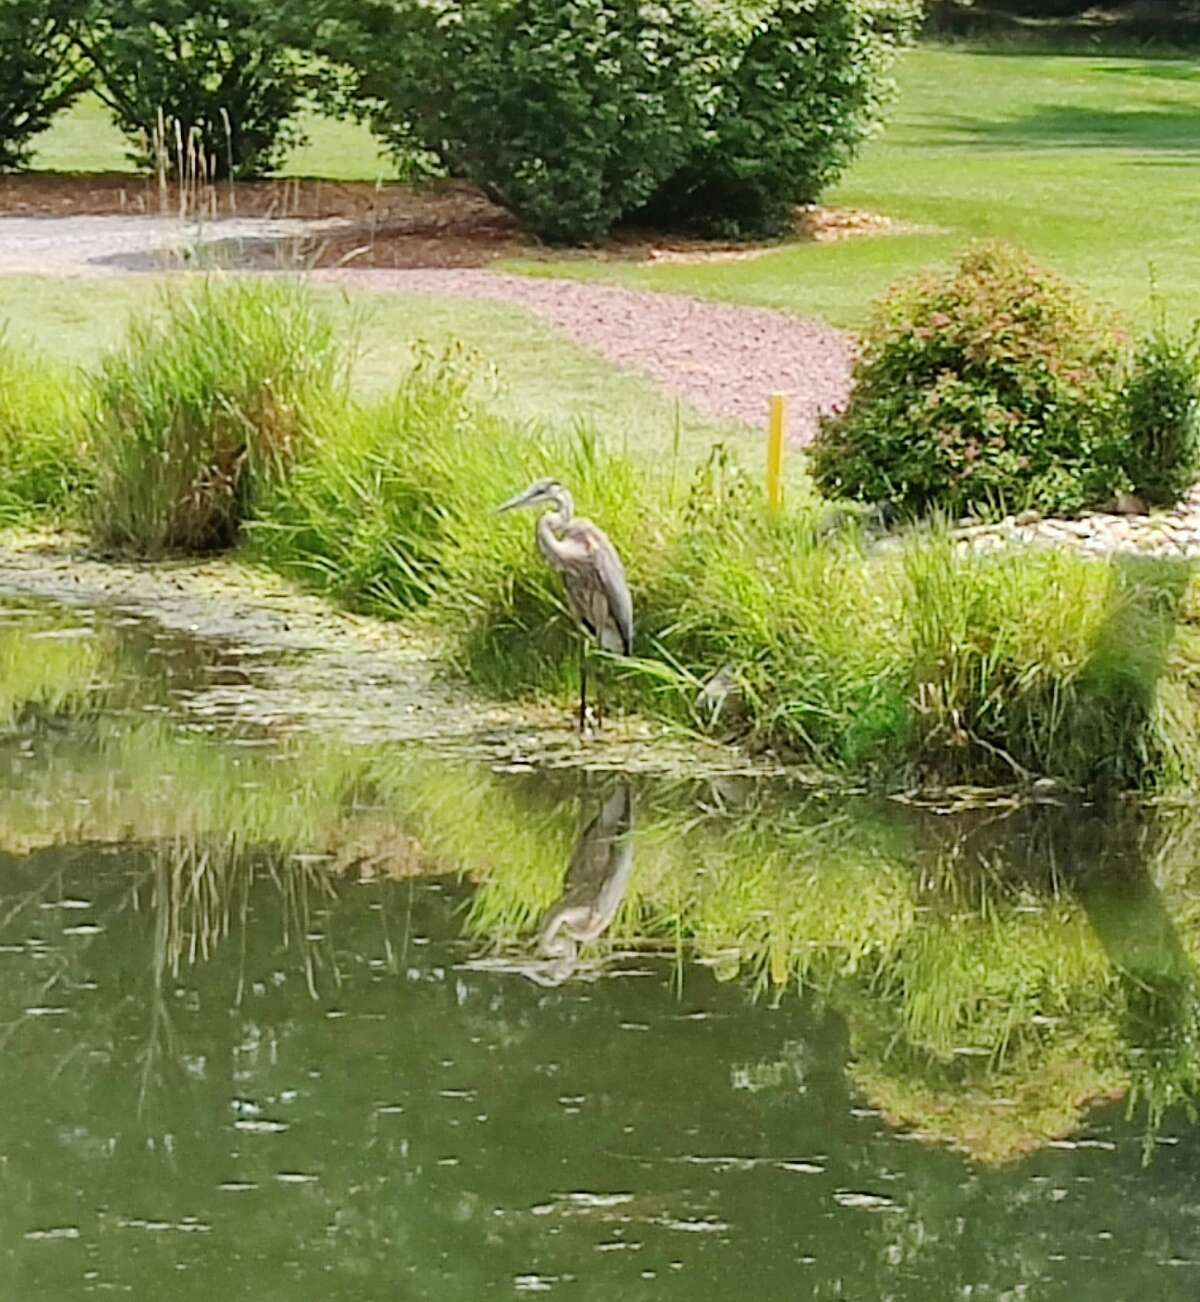 """This heron was watching the golfers, notes Catherine Black, who hopes he wasn't judging the shots. """"Later, he flew off and found a friend and they soared above the course for a long time,"""" she says."""